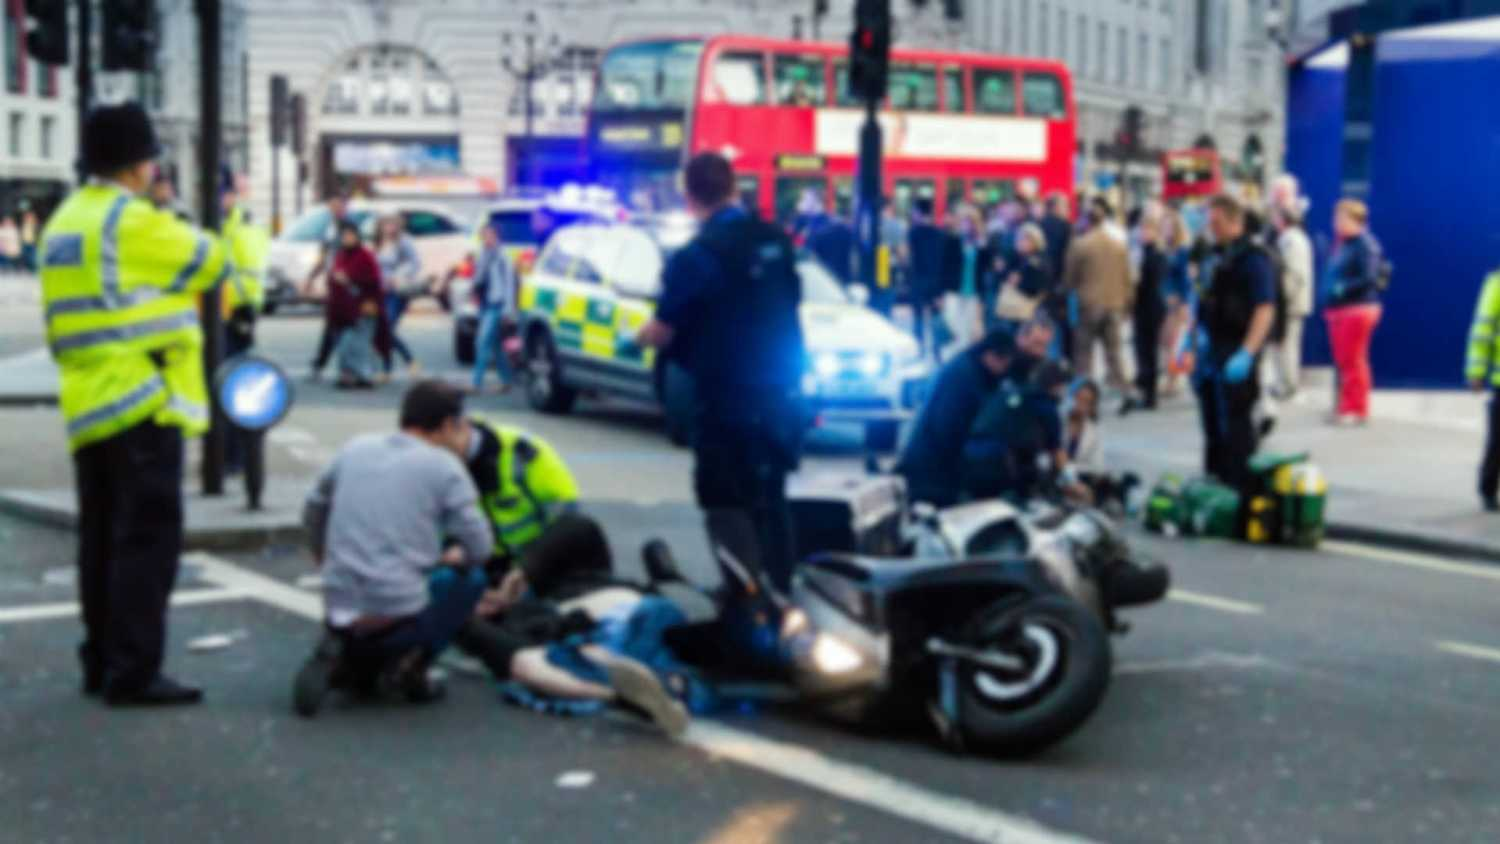 Motorcycle accident in London